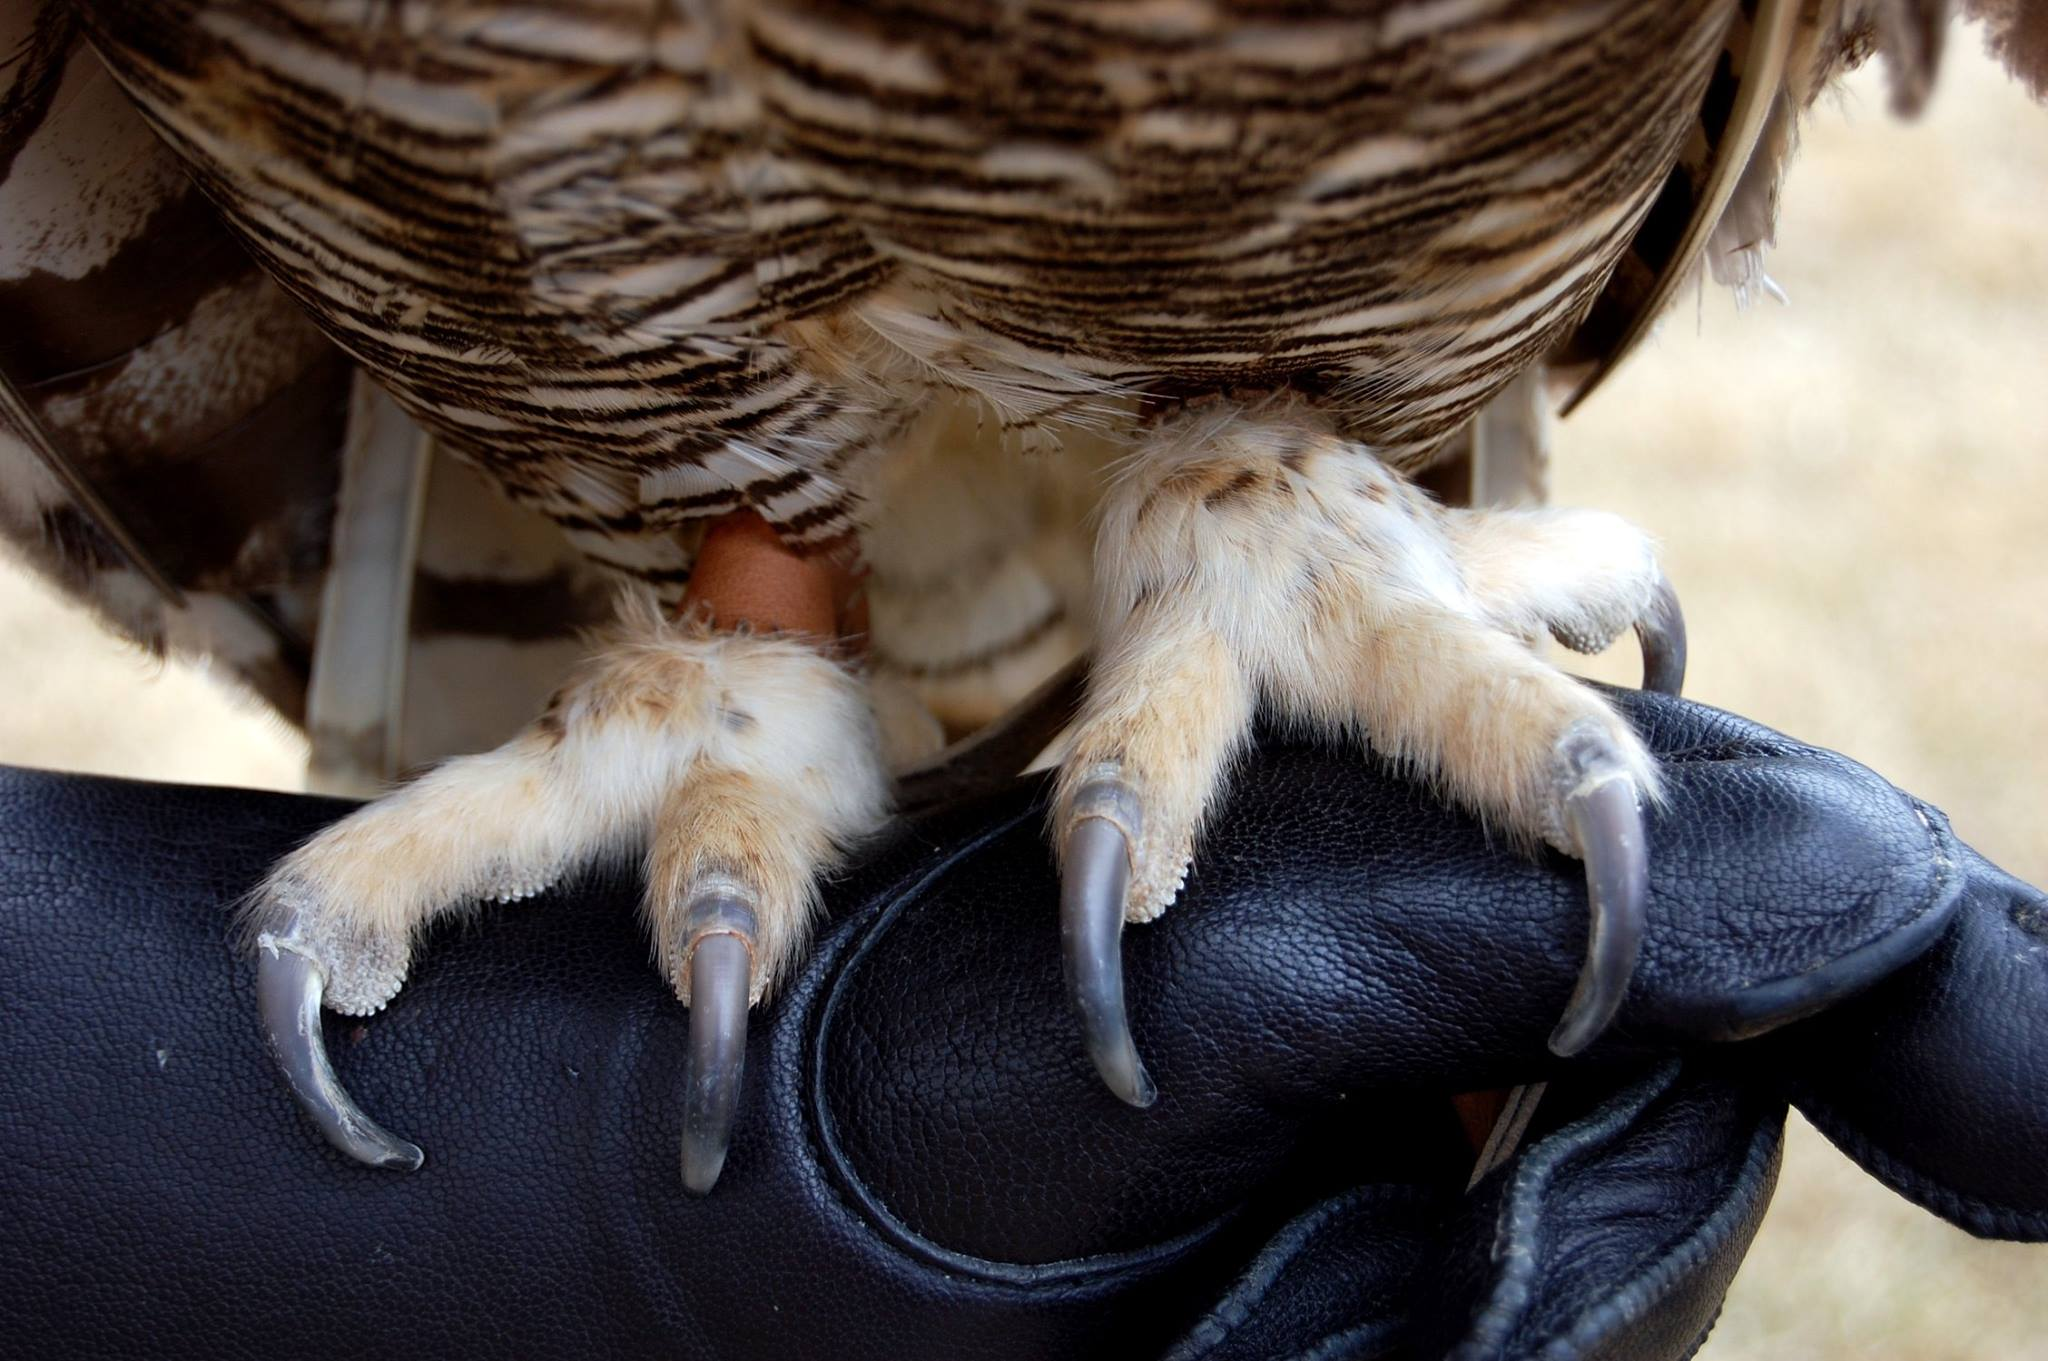 Teasdale, a Great Horned Owl, perched on a glove to demonstrate it's toe position.